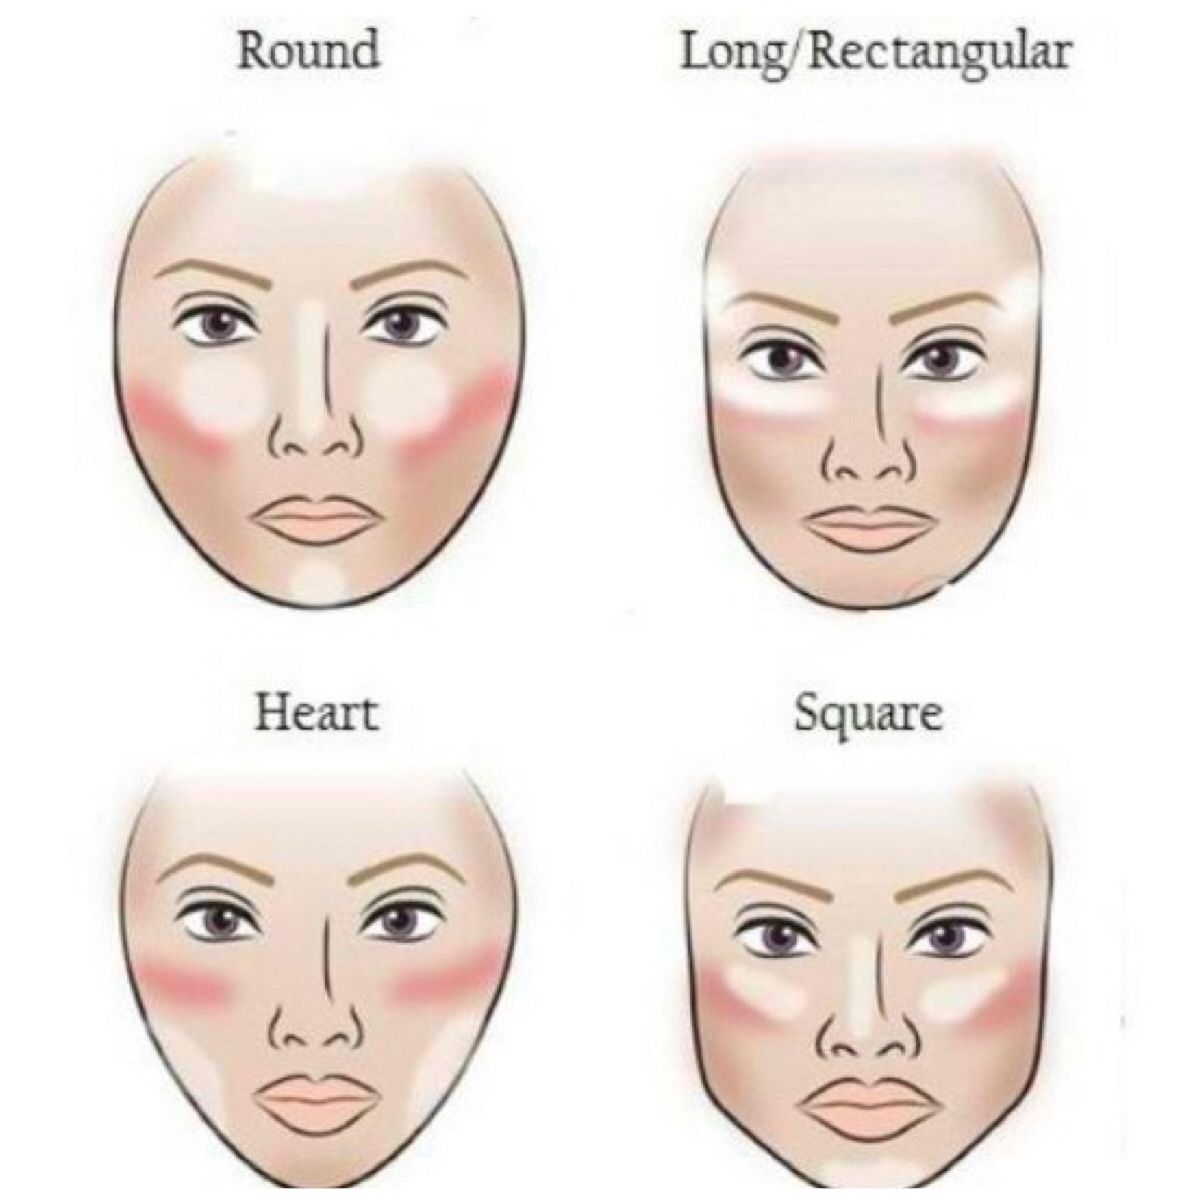 A guide to highlighting. For more highlighting tips visit www